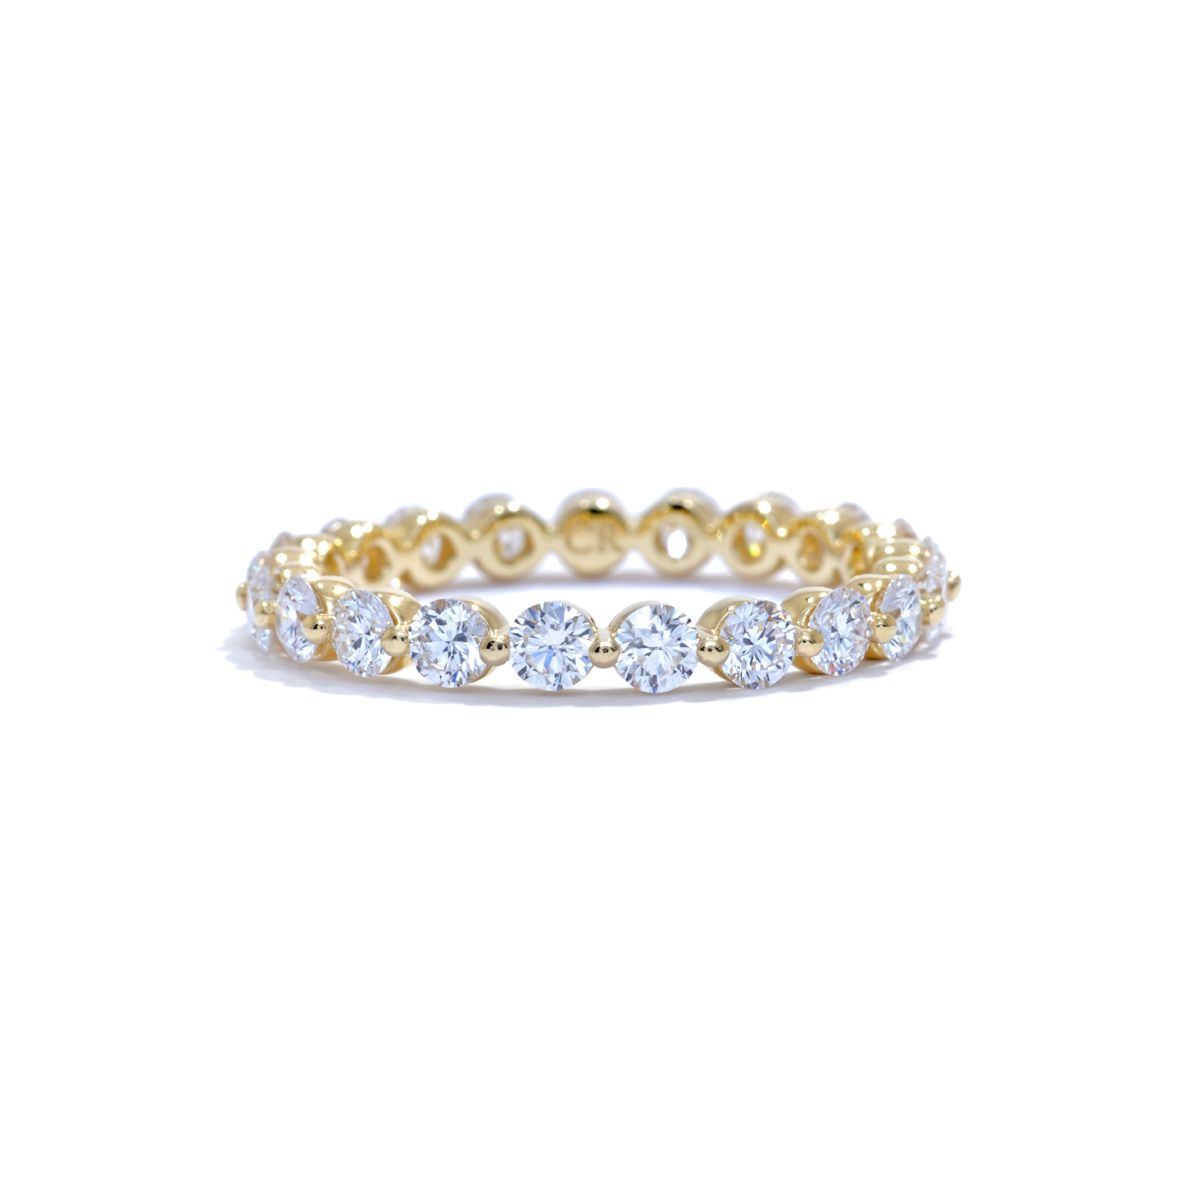 Floating Diamond Eternity Wedding Band 1.27 Ct. Tw. (In 18K Pertaining To Recent Diamond Eternity Anniversary Bands In White Gold (Gallery 2 of 25)